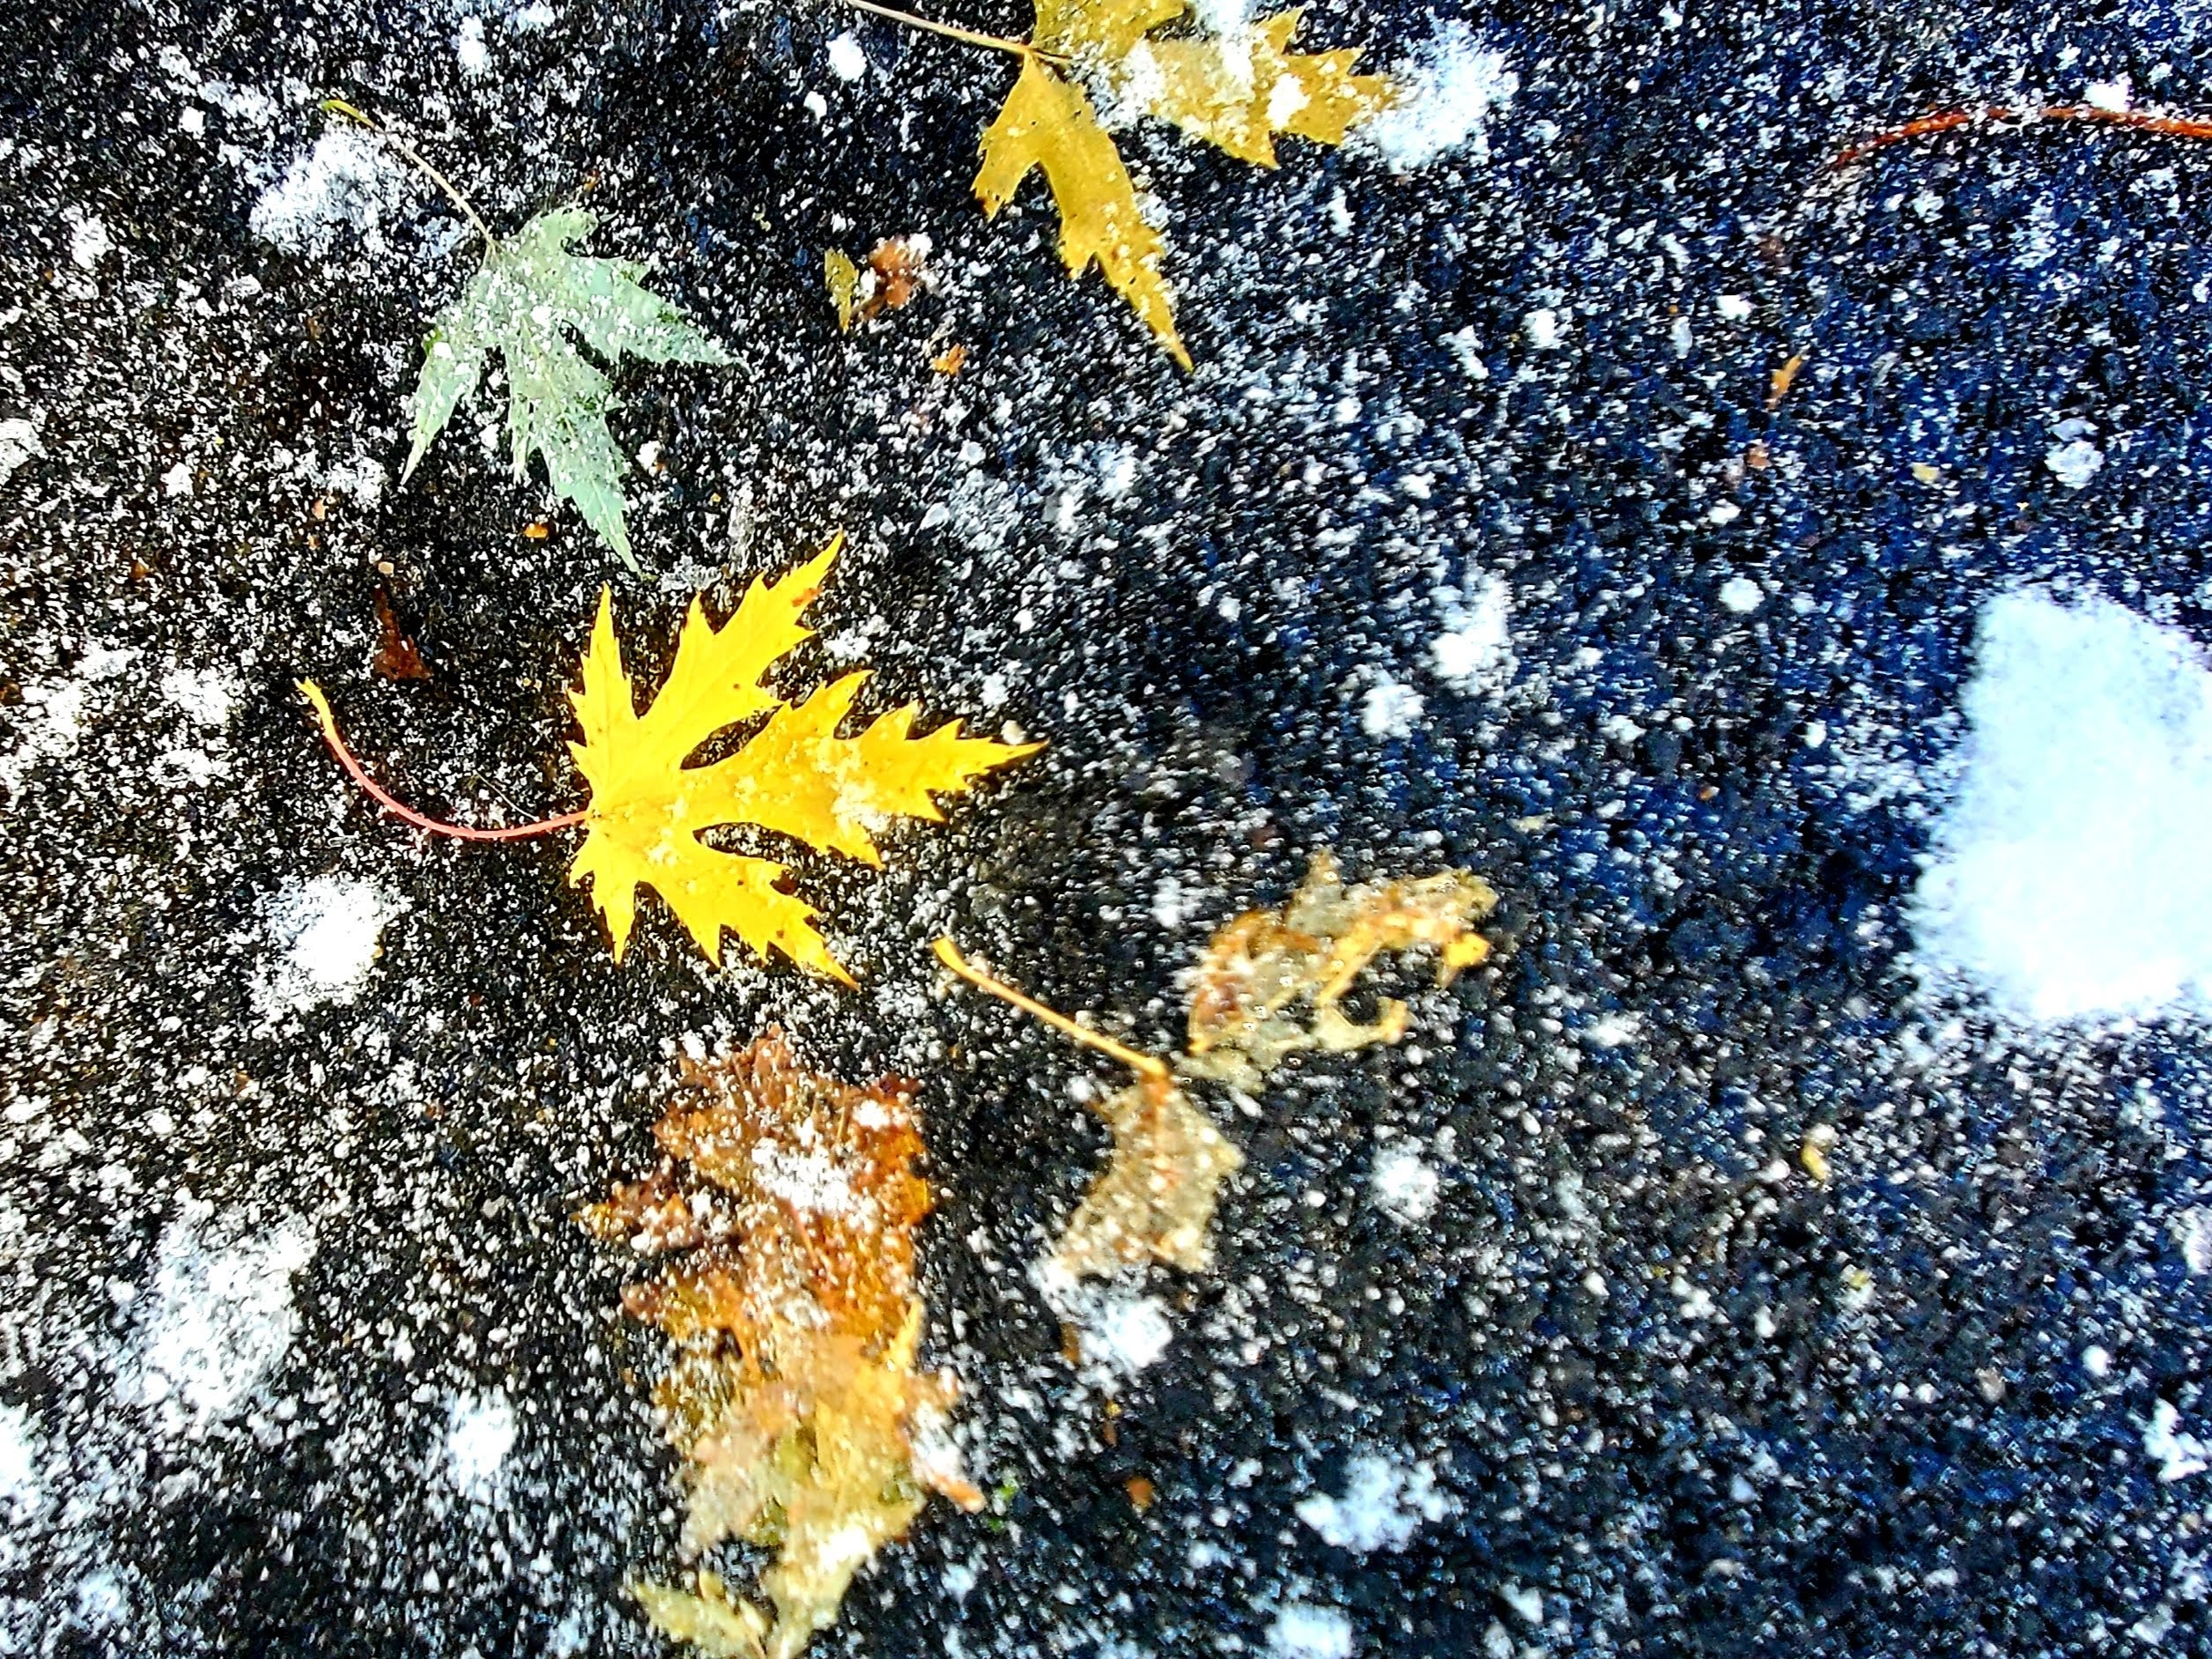 One brilliant yellow leave against snow splattered pavement